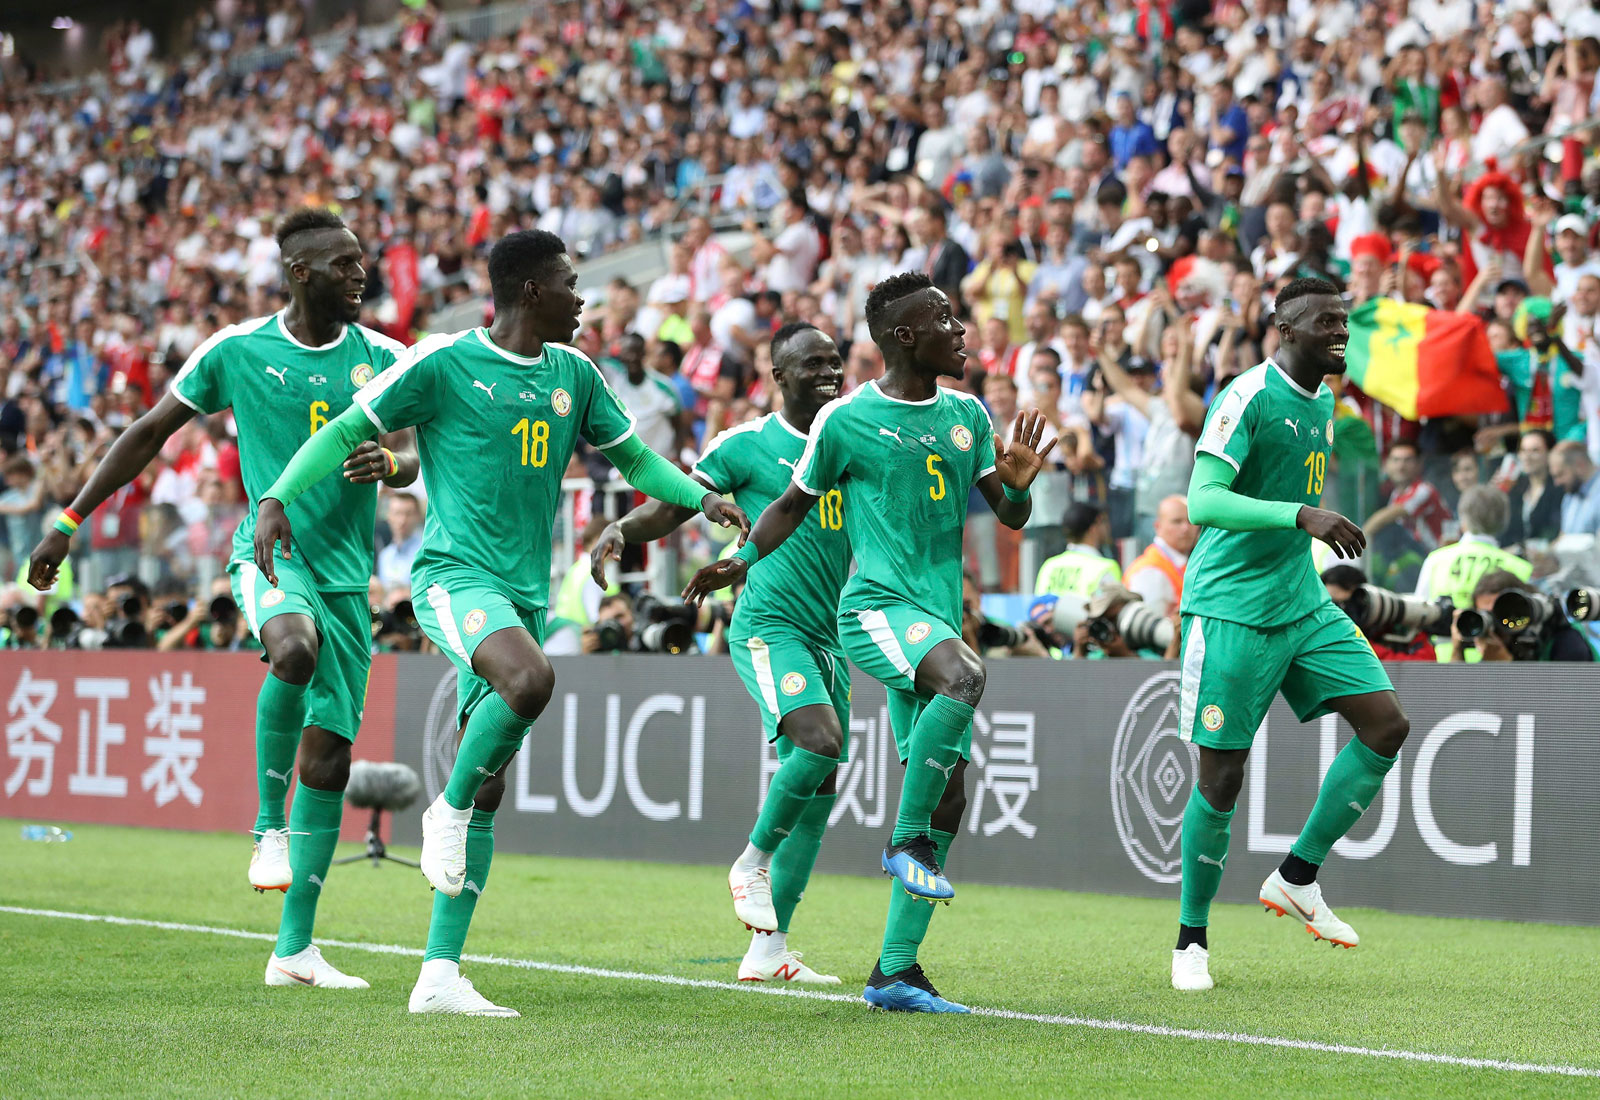 Senegal beats Poland at the World Cup for its first win on the stage since 2002